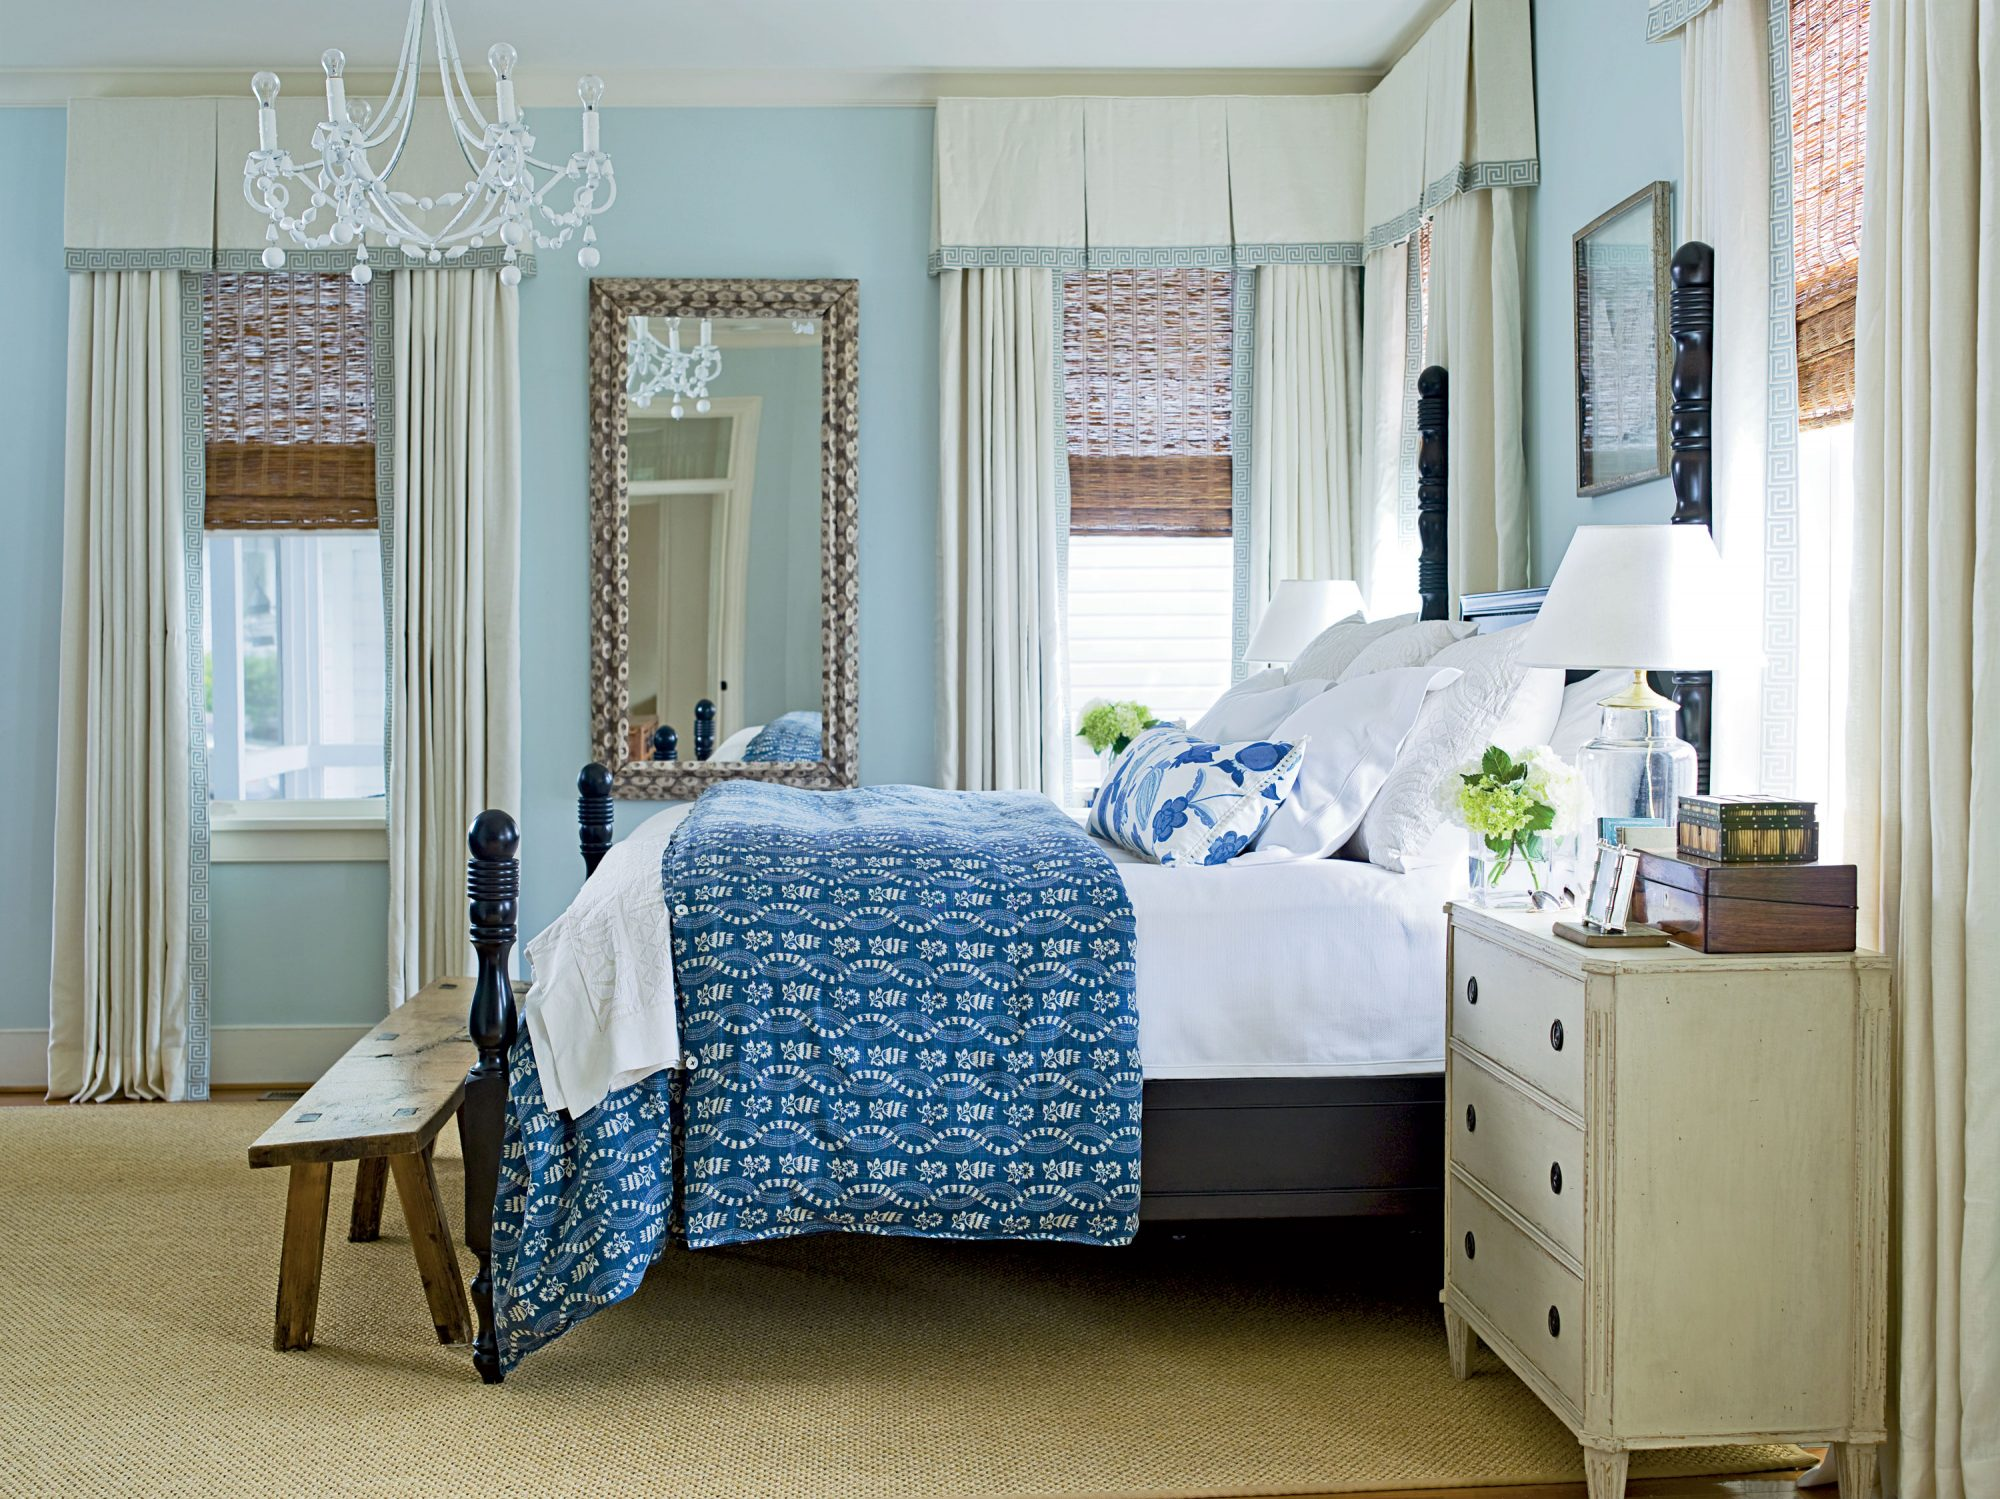 Pay homage to the sea with a bedroom awash with calming blues and ocean accessories such as this mirror framed in oyster shells. A dark wood bed and crisp white chandelier add elegance to the space.